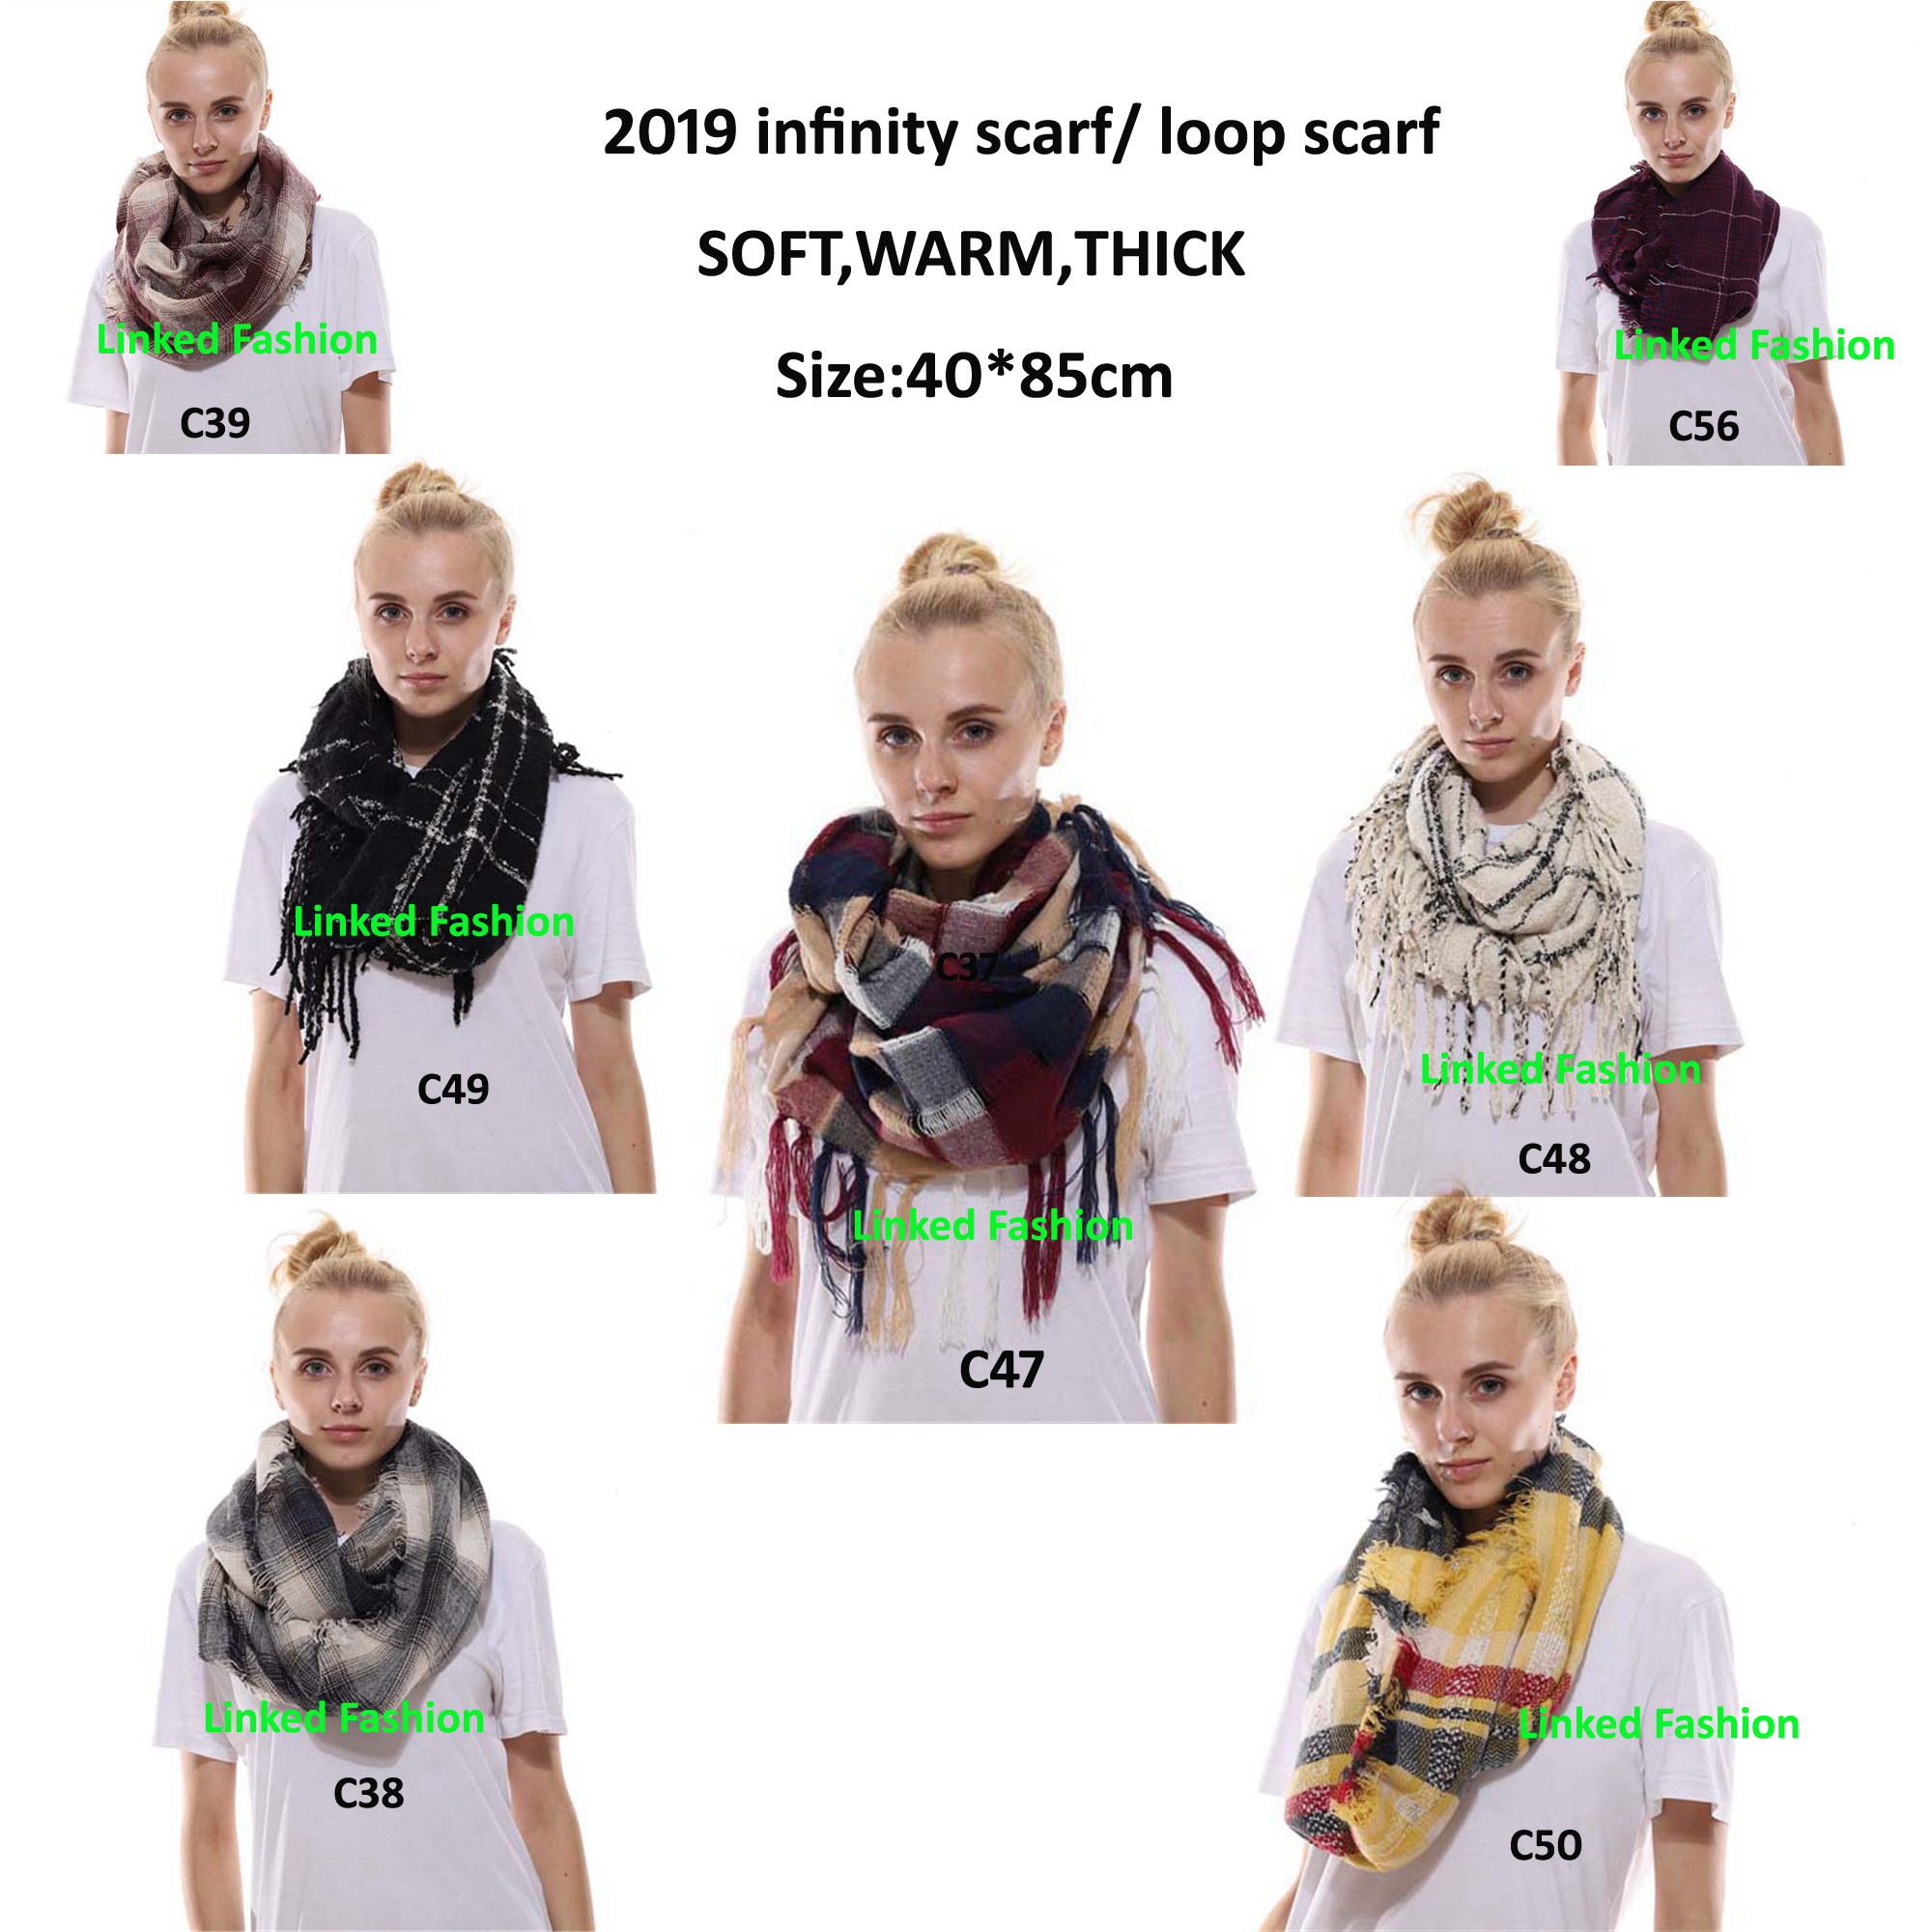 2018 Lady Women Fall Winter Infinity Blanket Oversized Shawl Plaid blanket scarf tartan plaid infinity scarf for gift